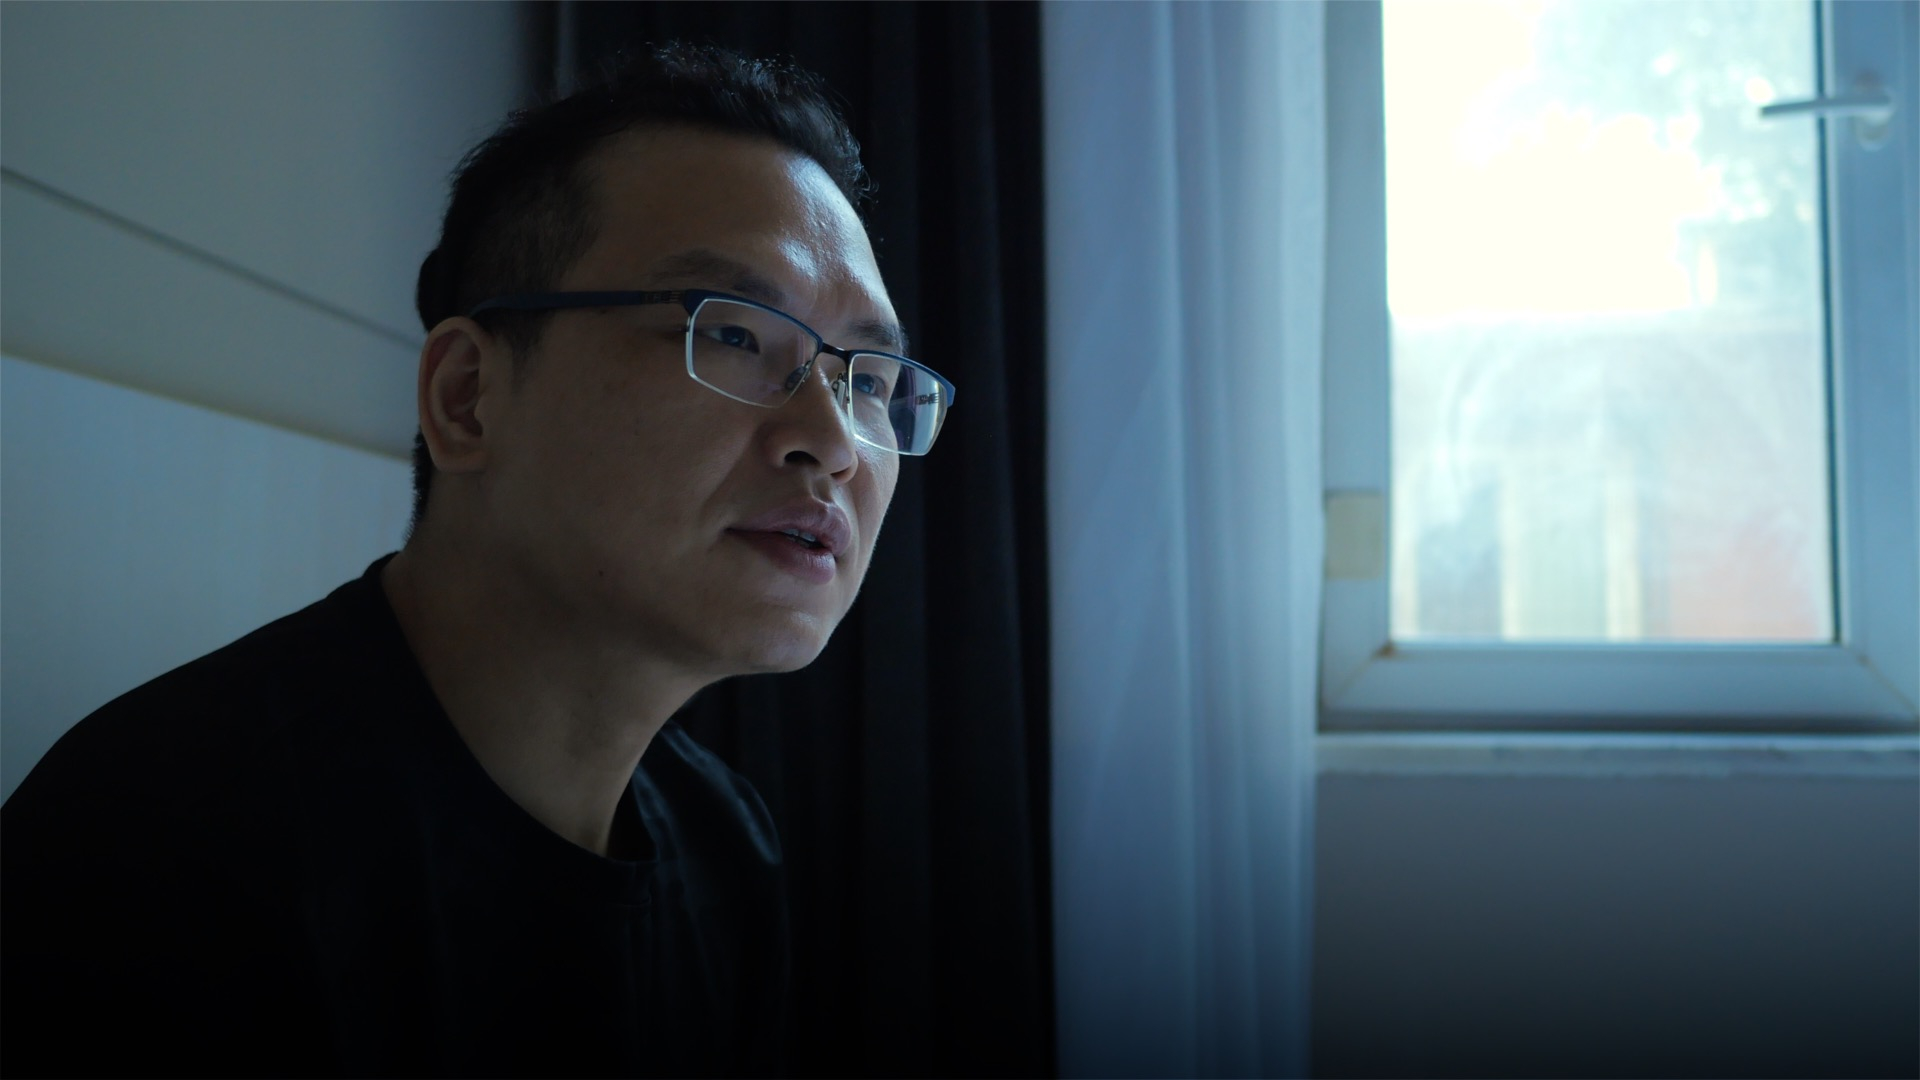 'No more silence' – Deaf people in China urged to speak out about their needs